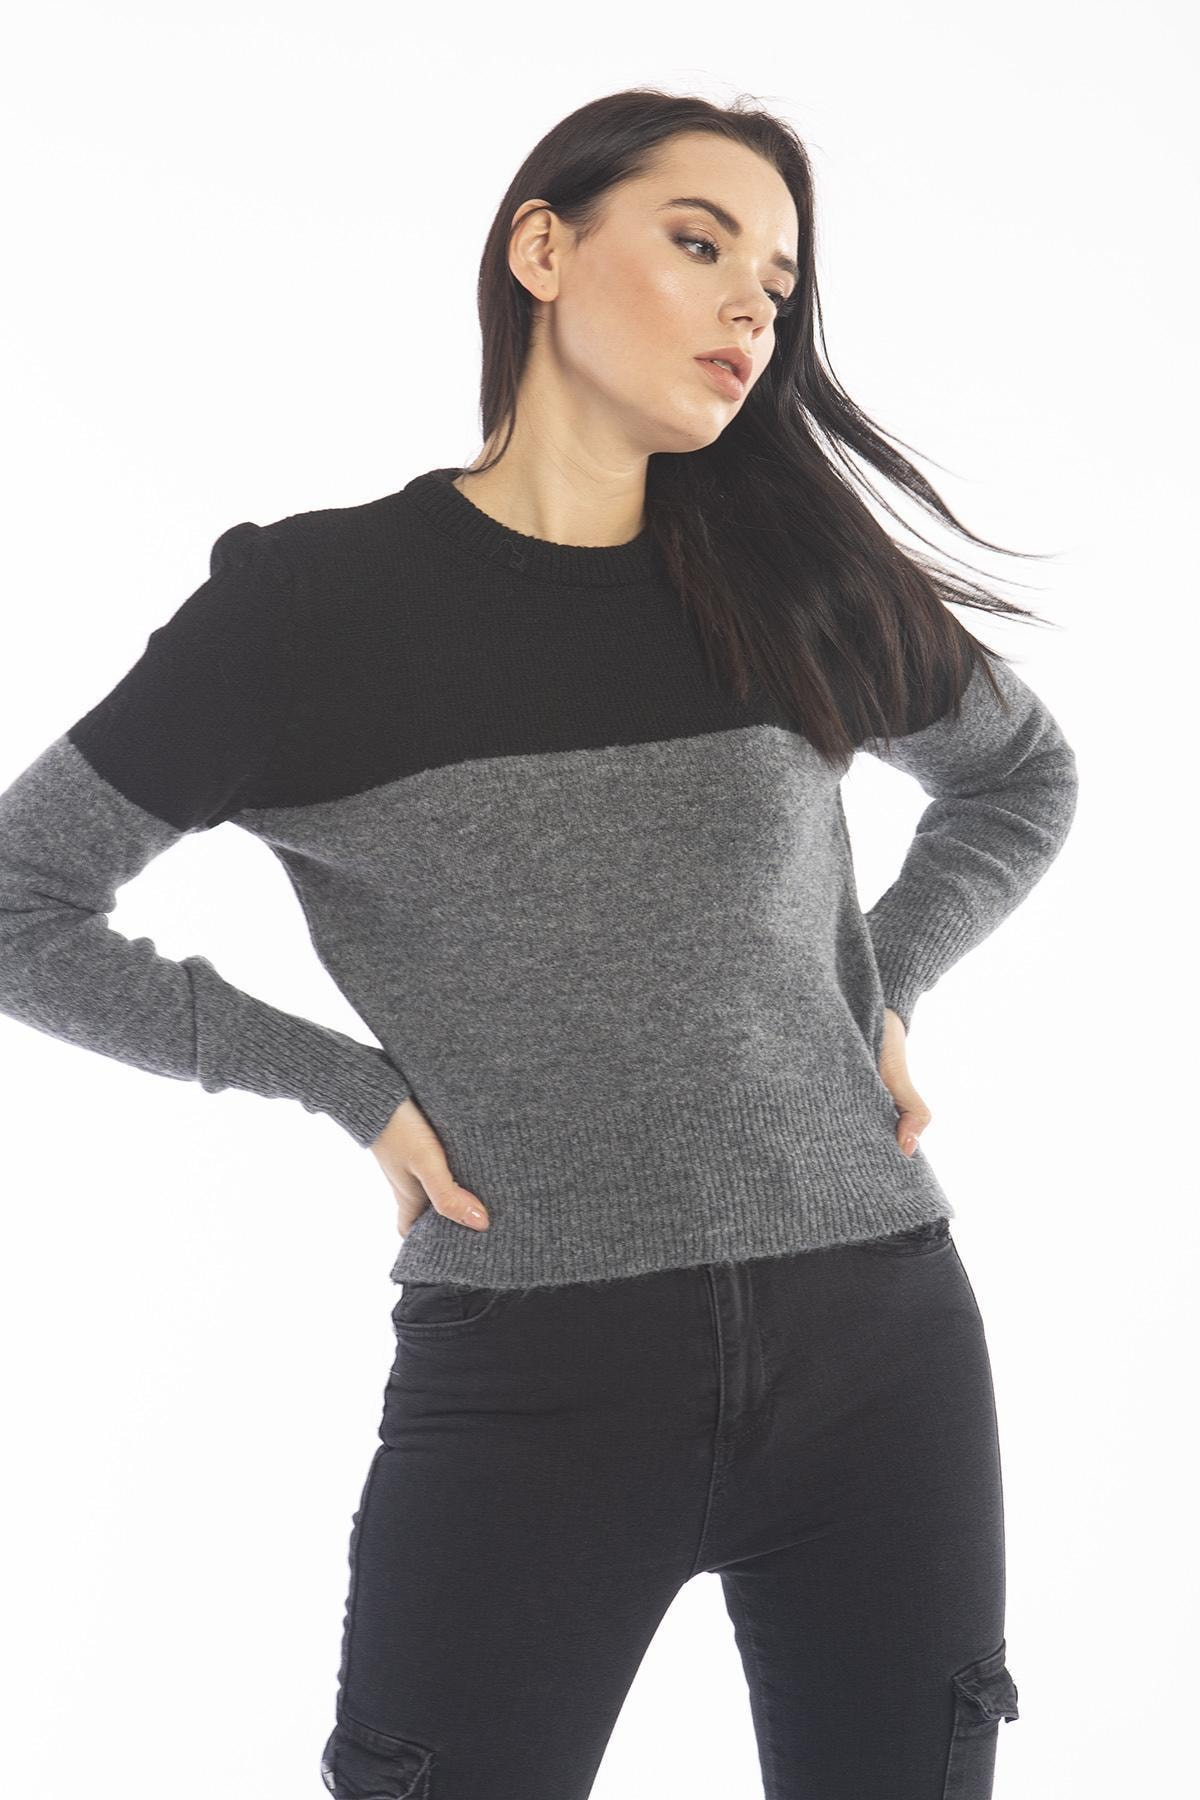 Women's Anthracite / Black Two Color Sweater 6086T